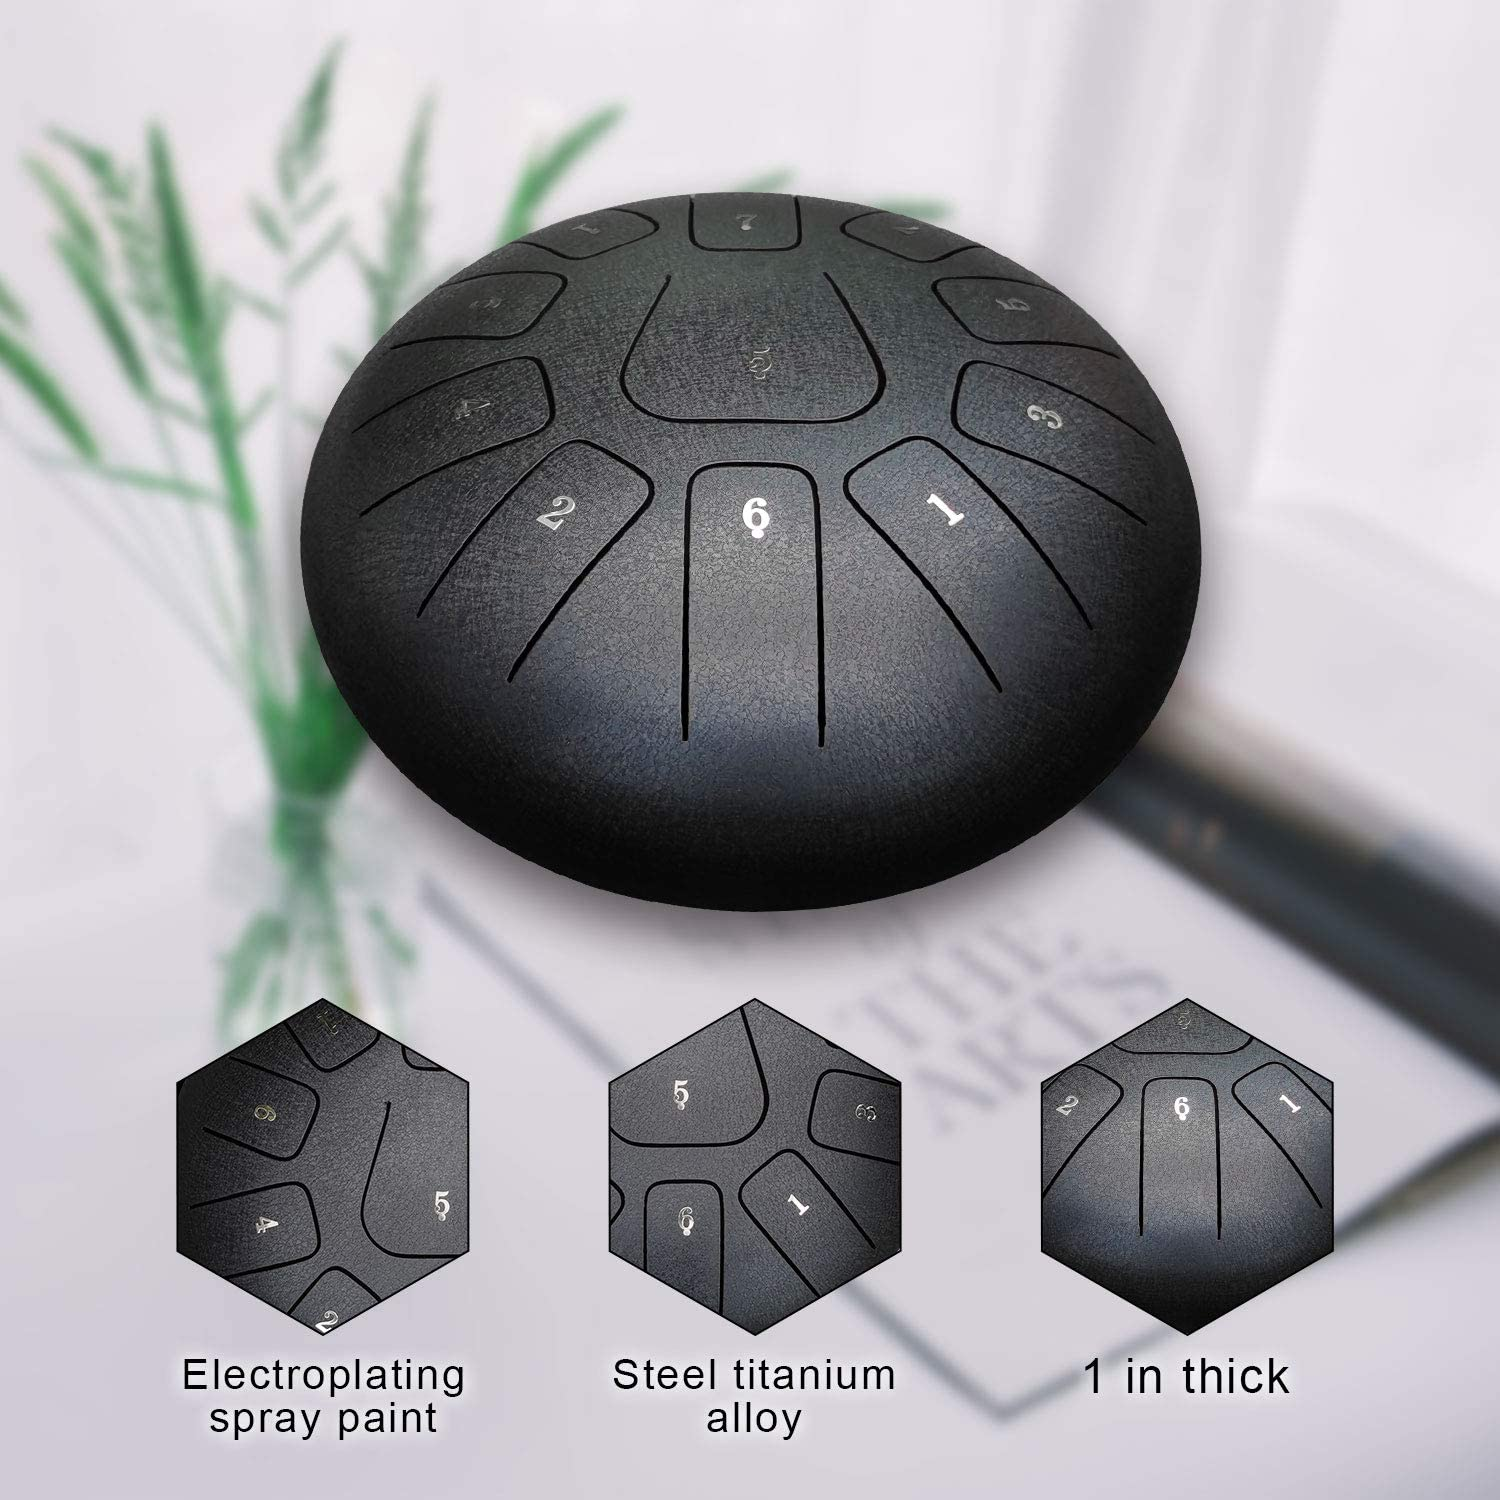 starry black Mallets notes sticker,Finger Picks Music Book Starry steel Tongue Drum,ASTEMAN 12 inch 11 Notes Steel Drums Percussion Instrument with Bag